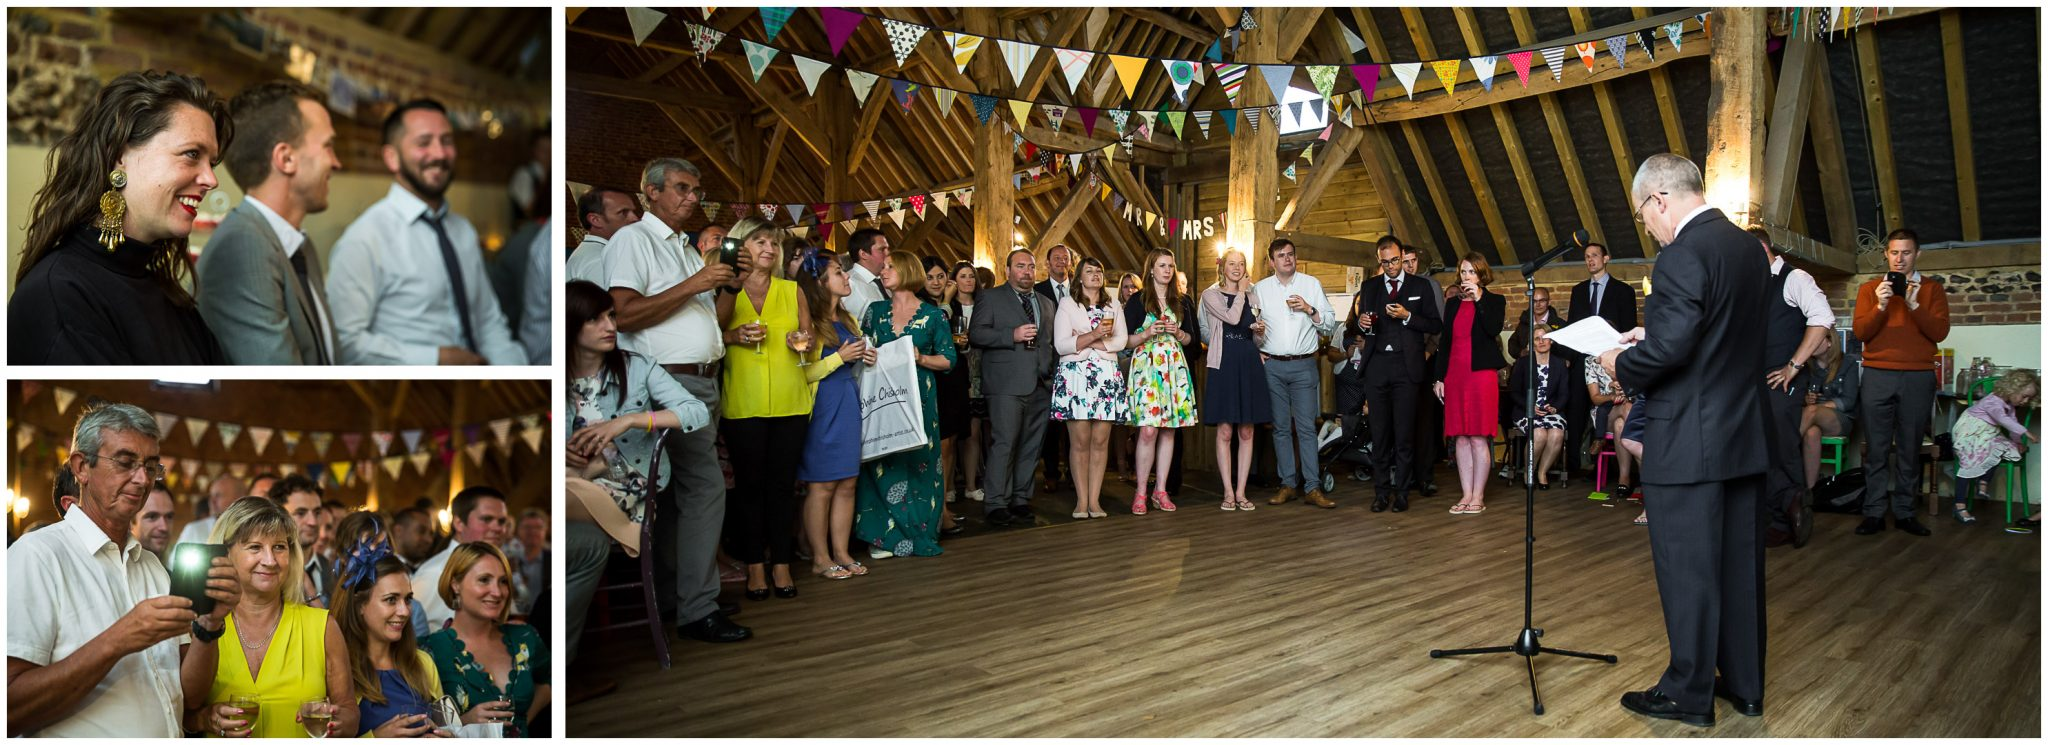 Winchester Great Hall wedding photography guests watching speeches